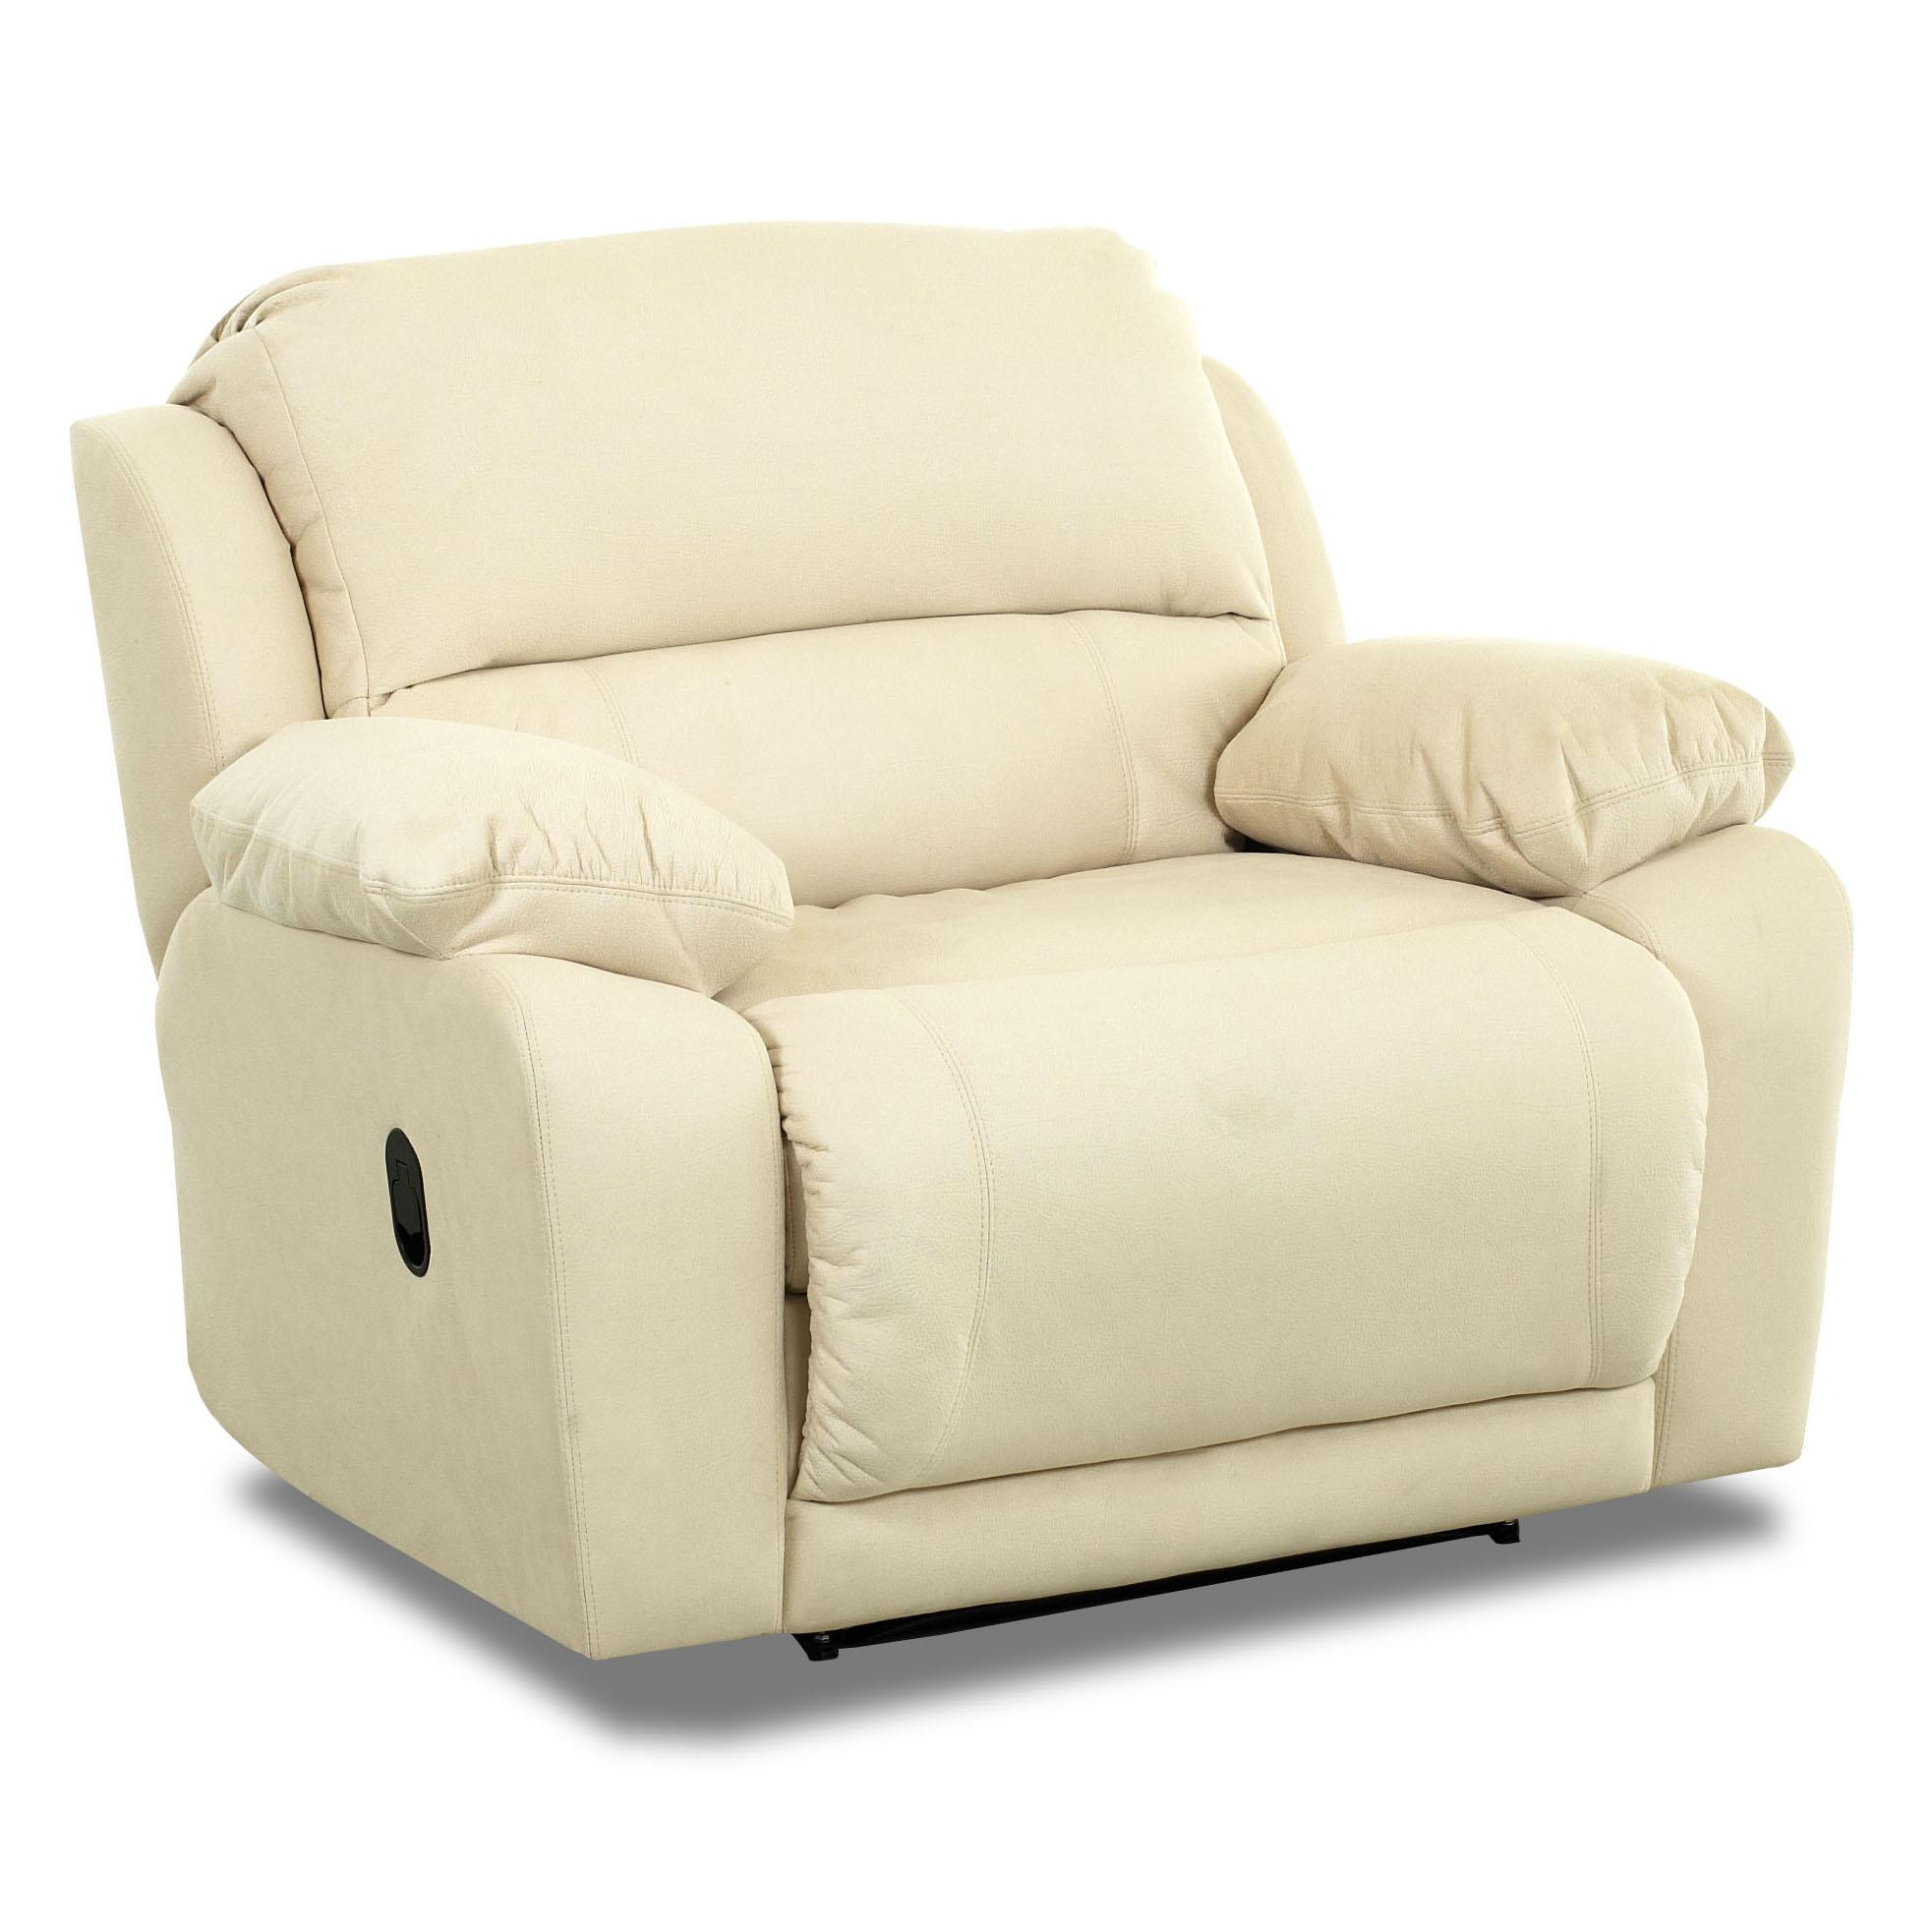 Superieur Oversized Reclining Chair